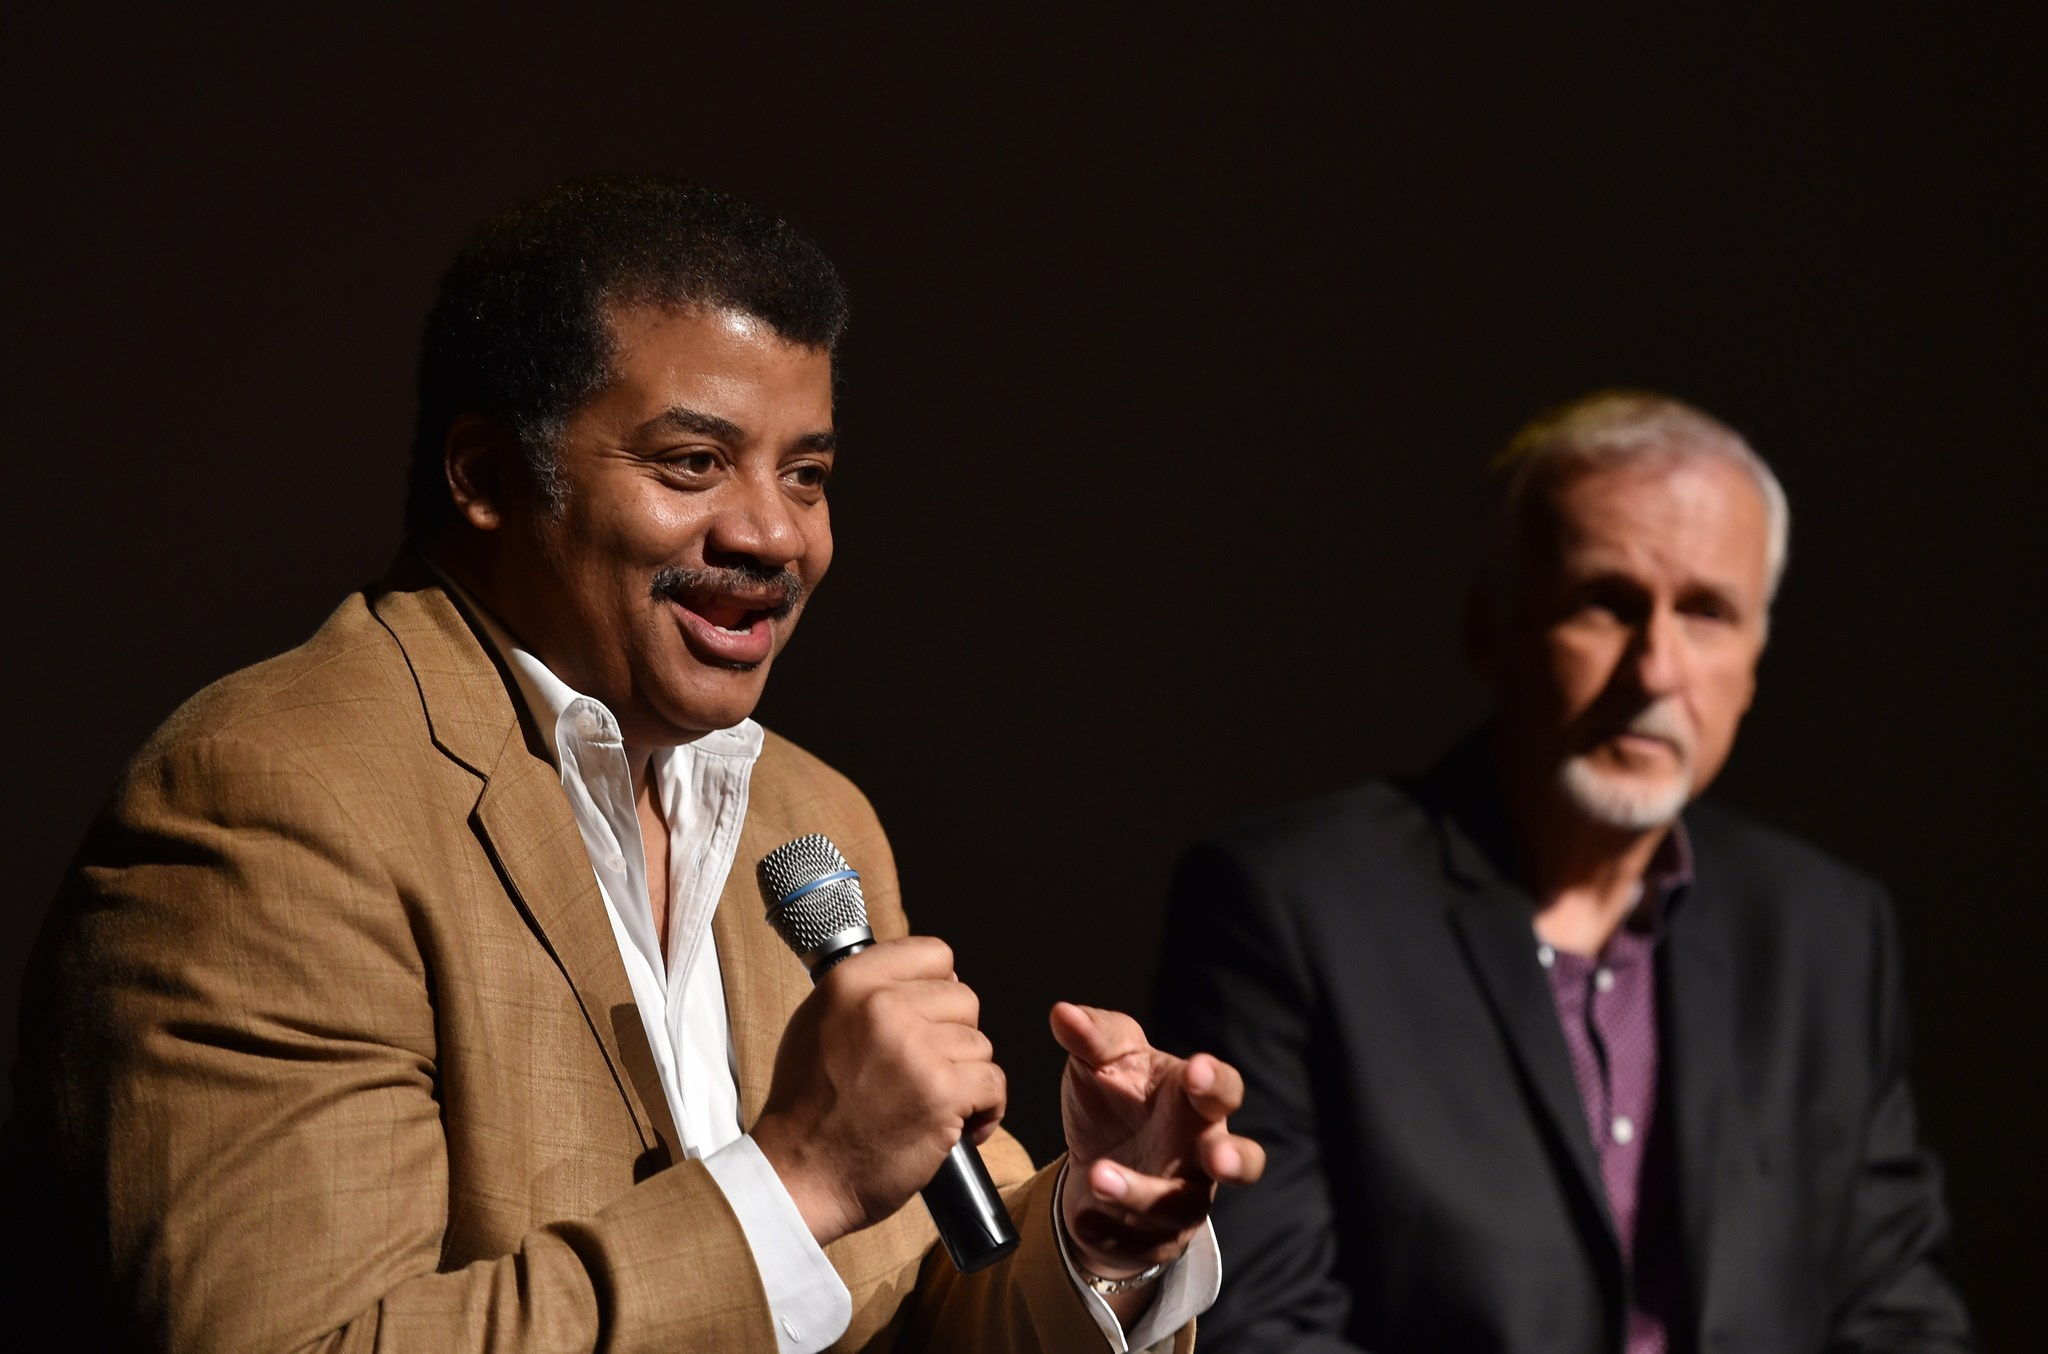 James Cameron and Neil deGrasse Tyson at an event for Deepsea Challenge 3D (2014)